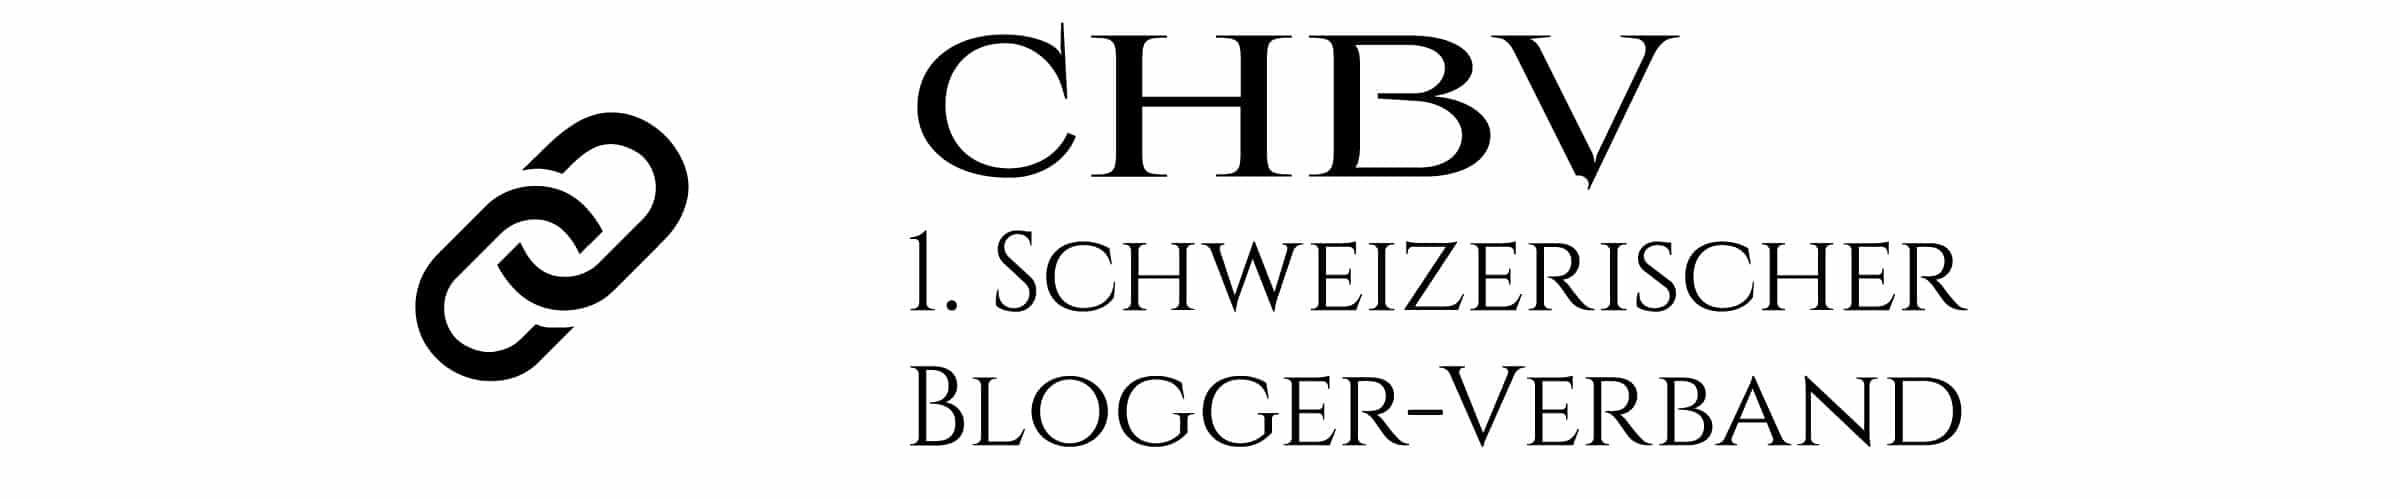 1. Schweizer Bloggerverband (Version 10.1.4.12)